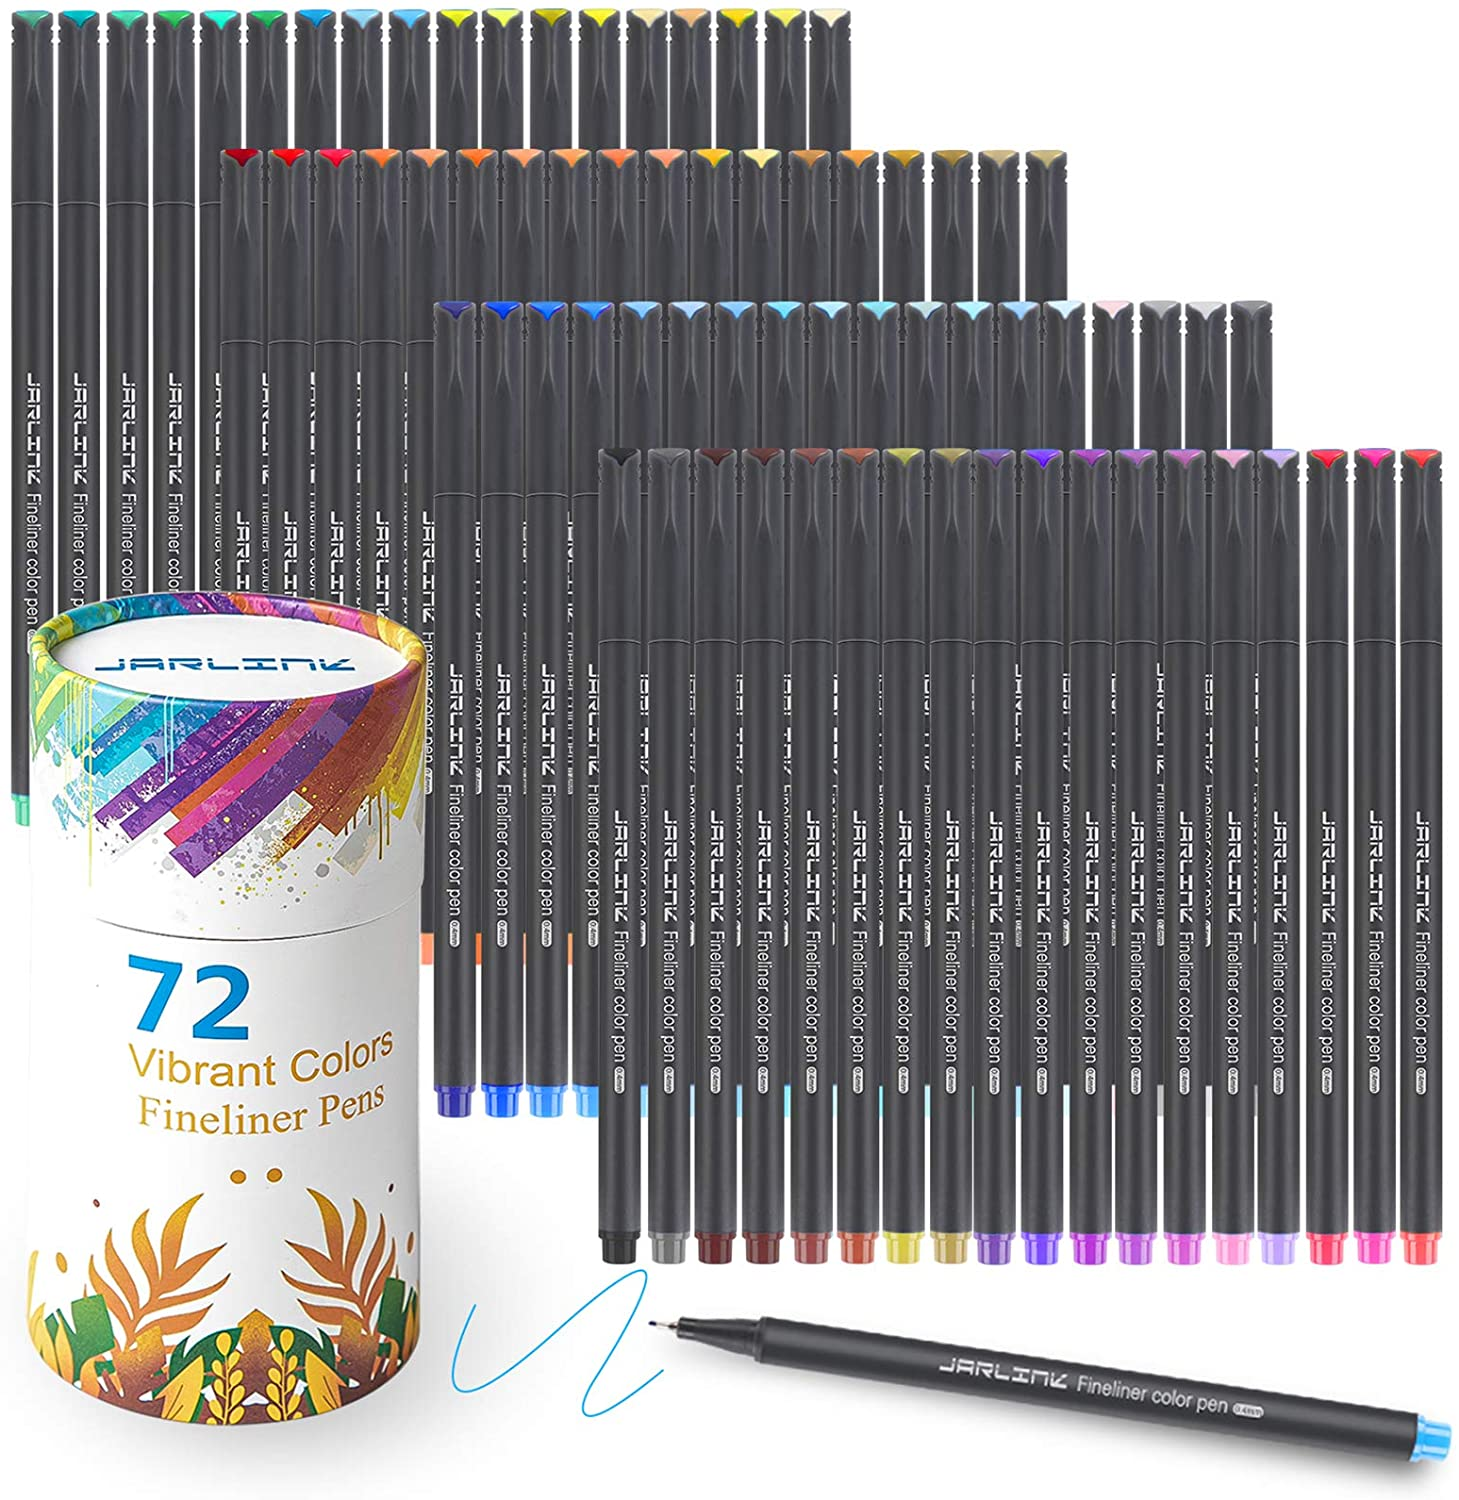 JARLINK 72 Colors Journal Planner Pens, Fine Point Fineliner Markers for Journaling Writing Office Supplies